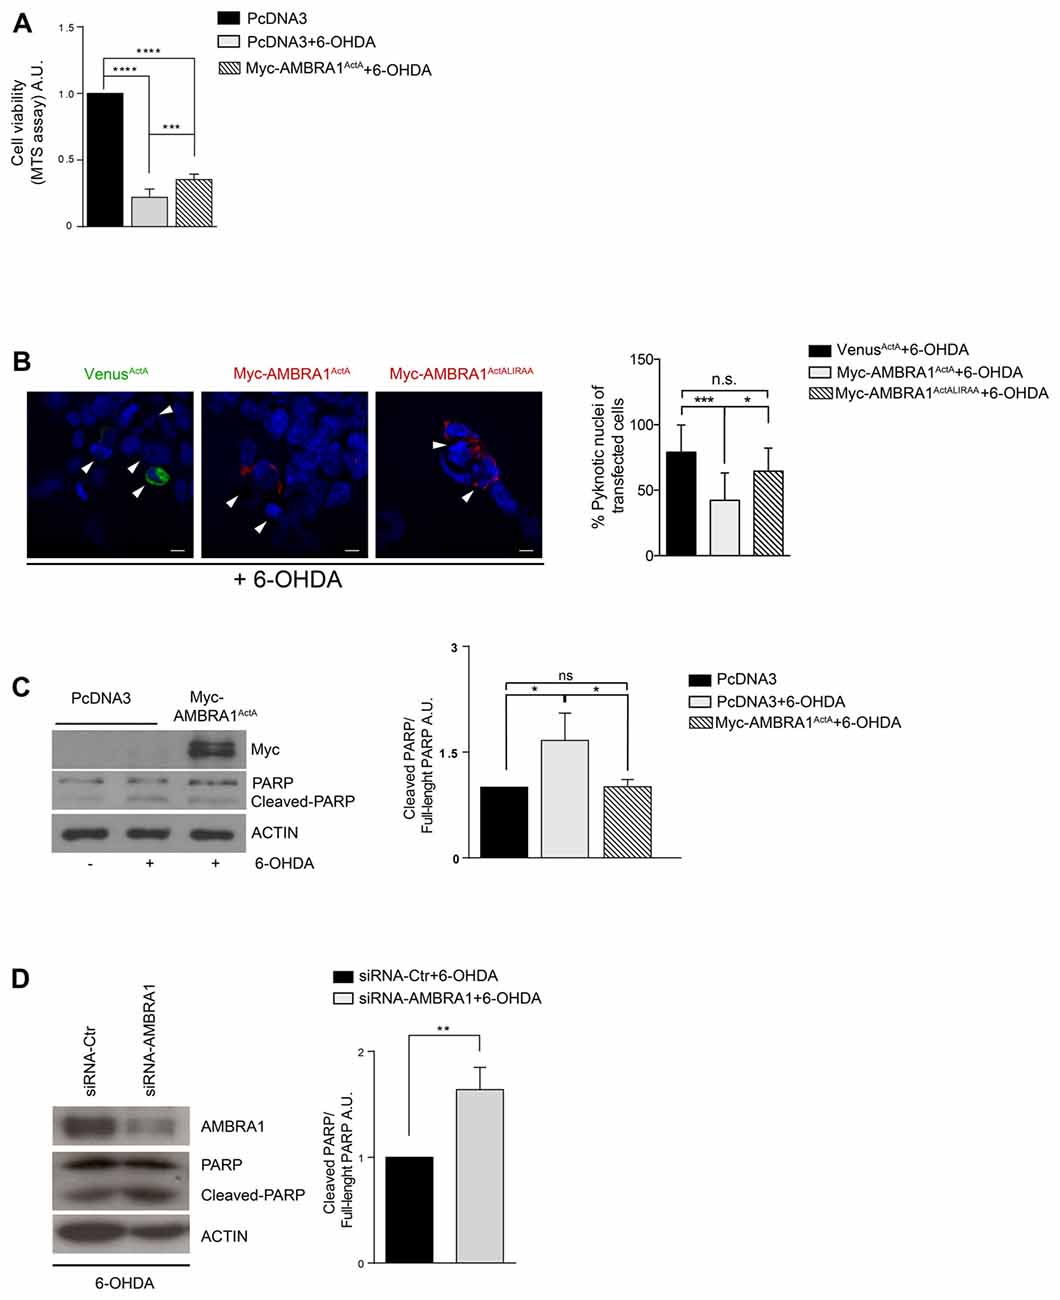 oxidative stress <strong>and</strong> apoptosis induced by neurotoxicity in human